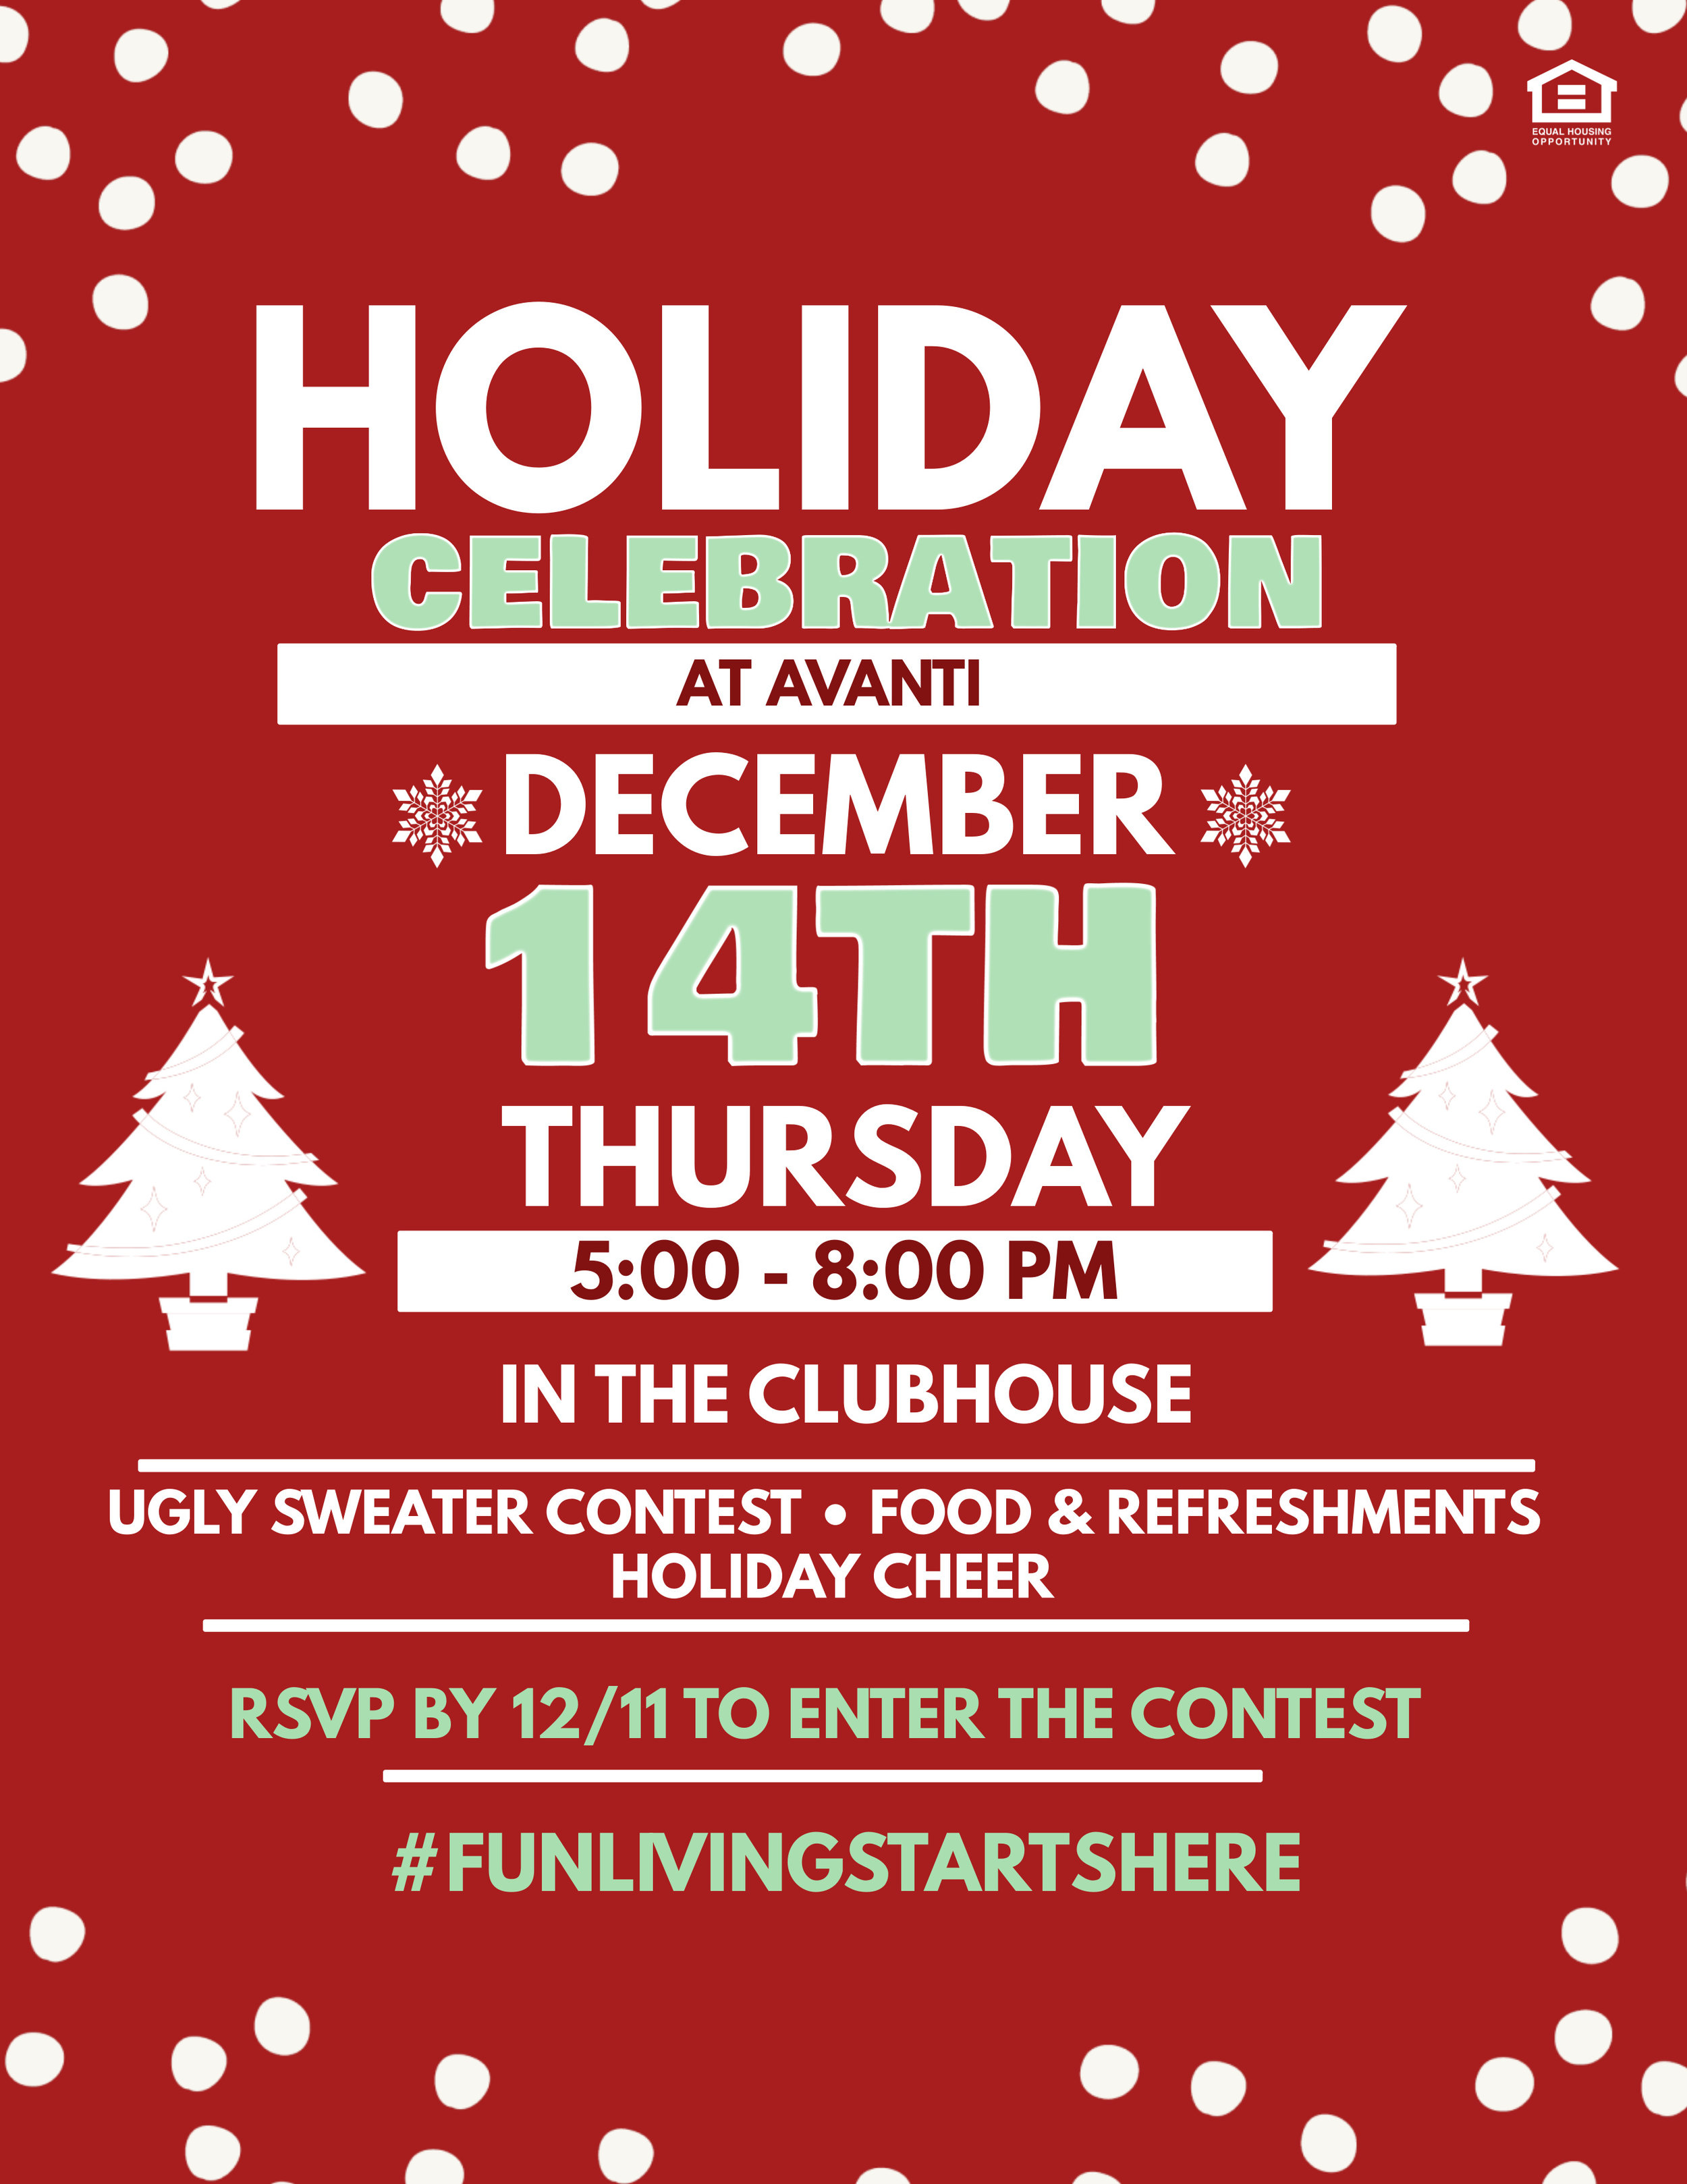 Holiday Celebration at Avanti Luxury Apartments in Bel Air, MD